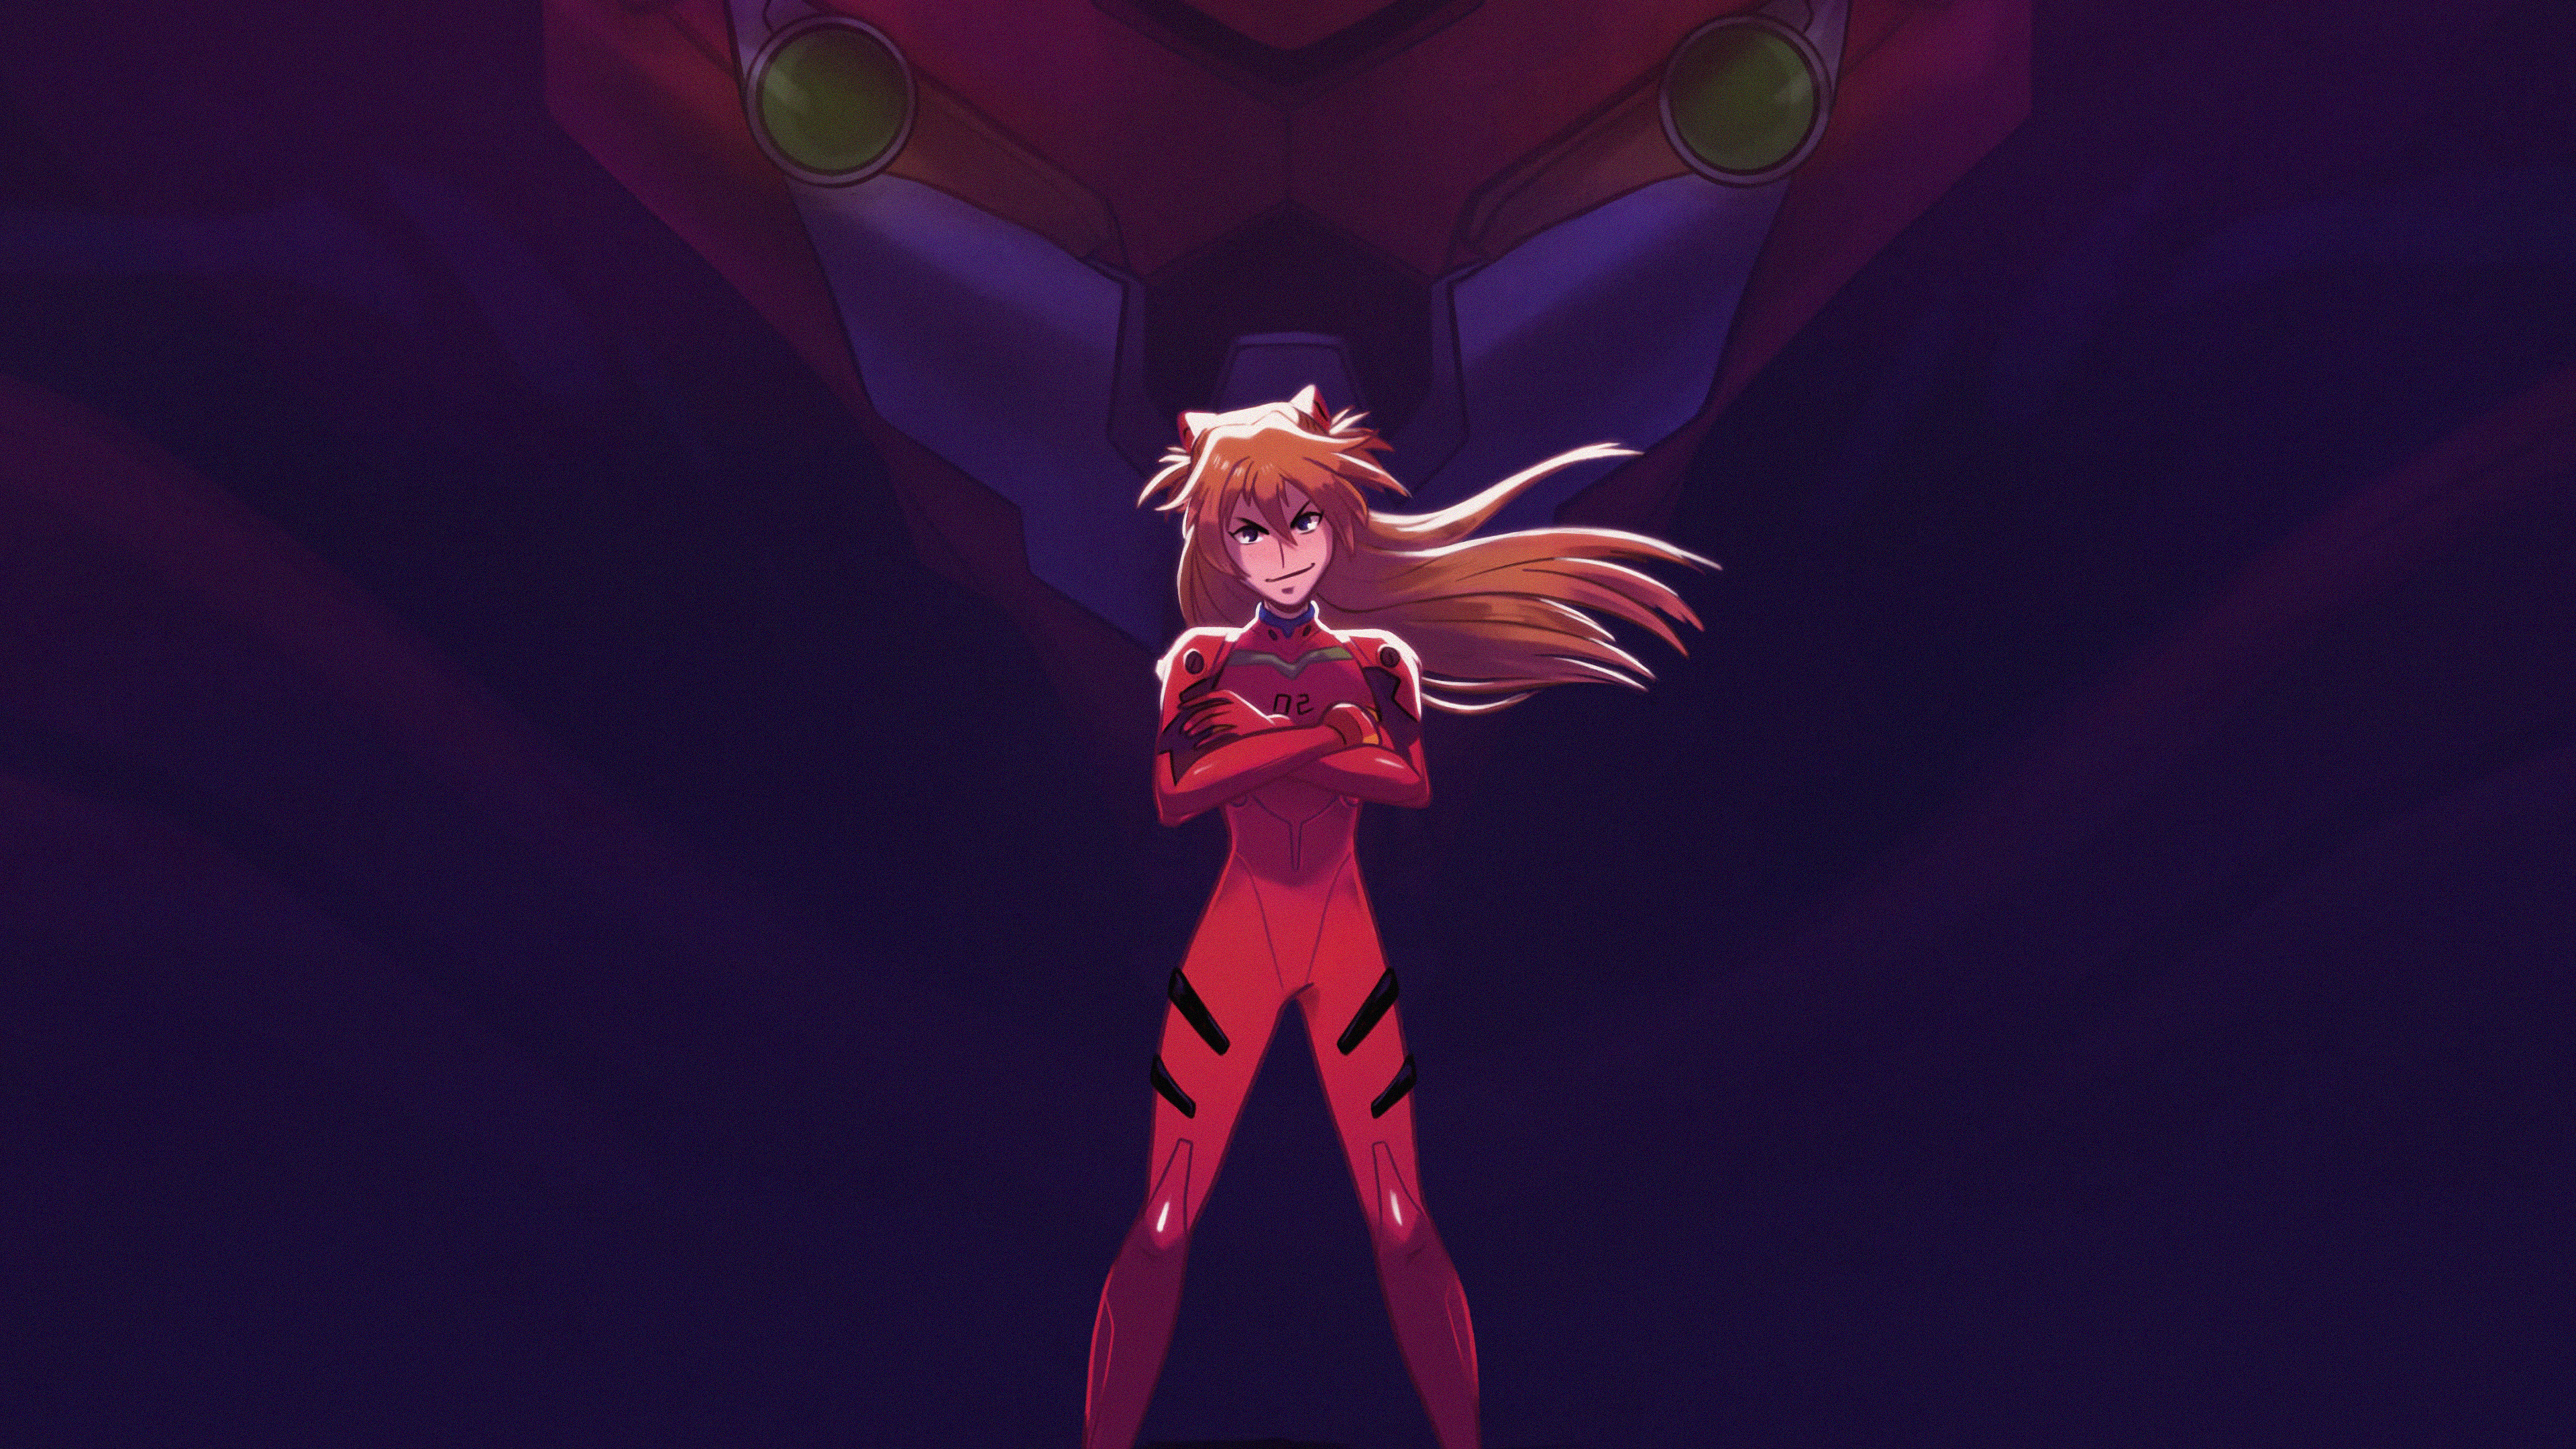 Asuka And Her Unit 02 From Evangelion Hd Anime 4k Wallpapers Images Backgrounds Photos And Pictures